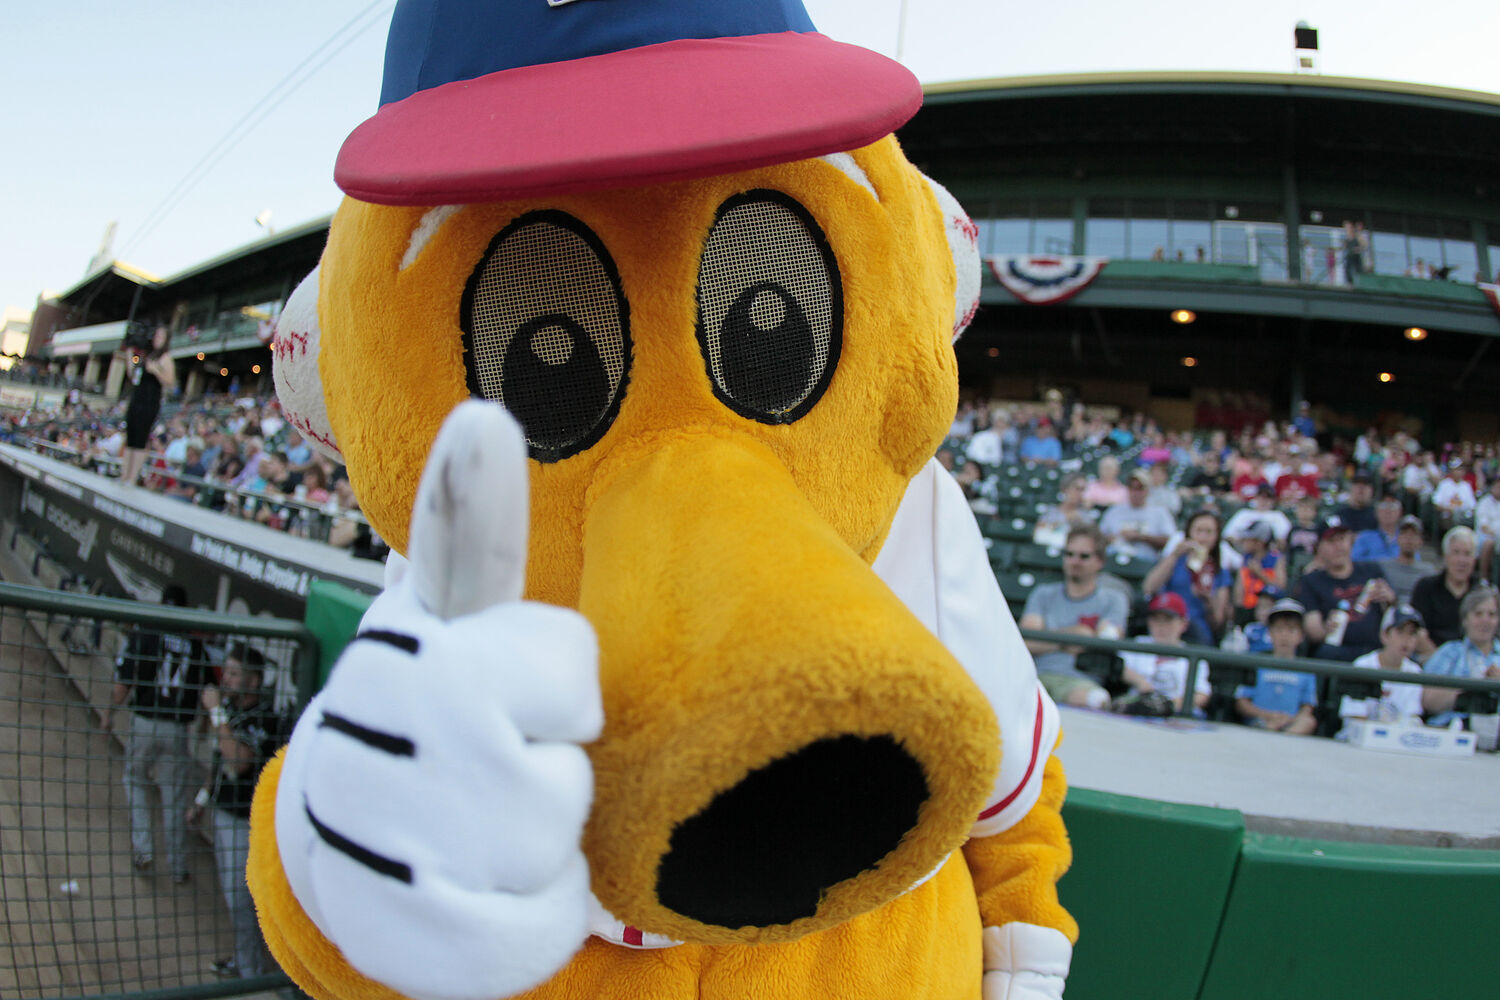 Goldeyes mascot Goldie greets fans at the All-Stars Skills Competition in Winnipeg. (John Woods / Winnipeg Free Press)